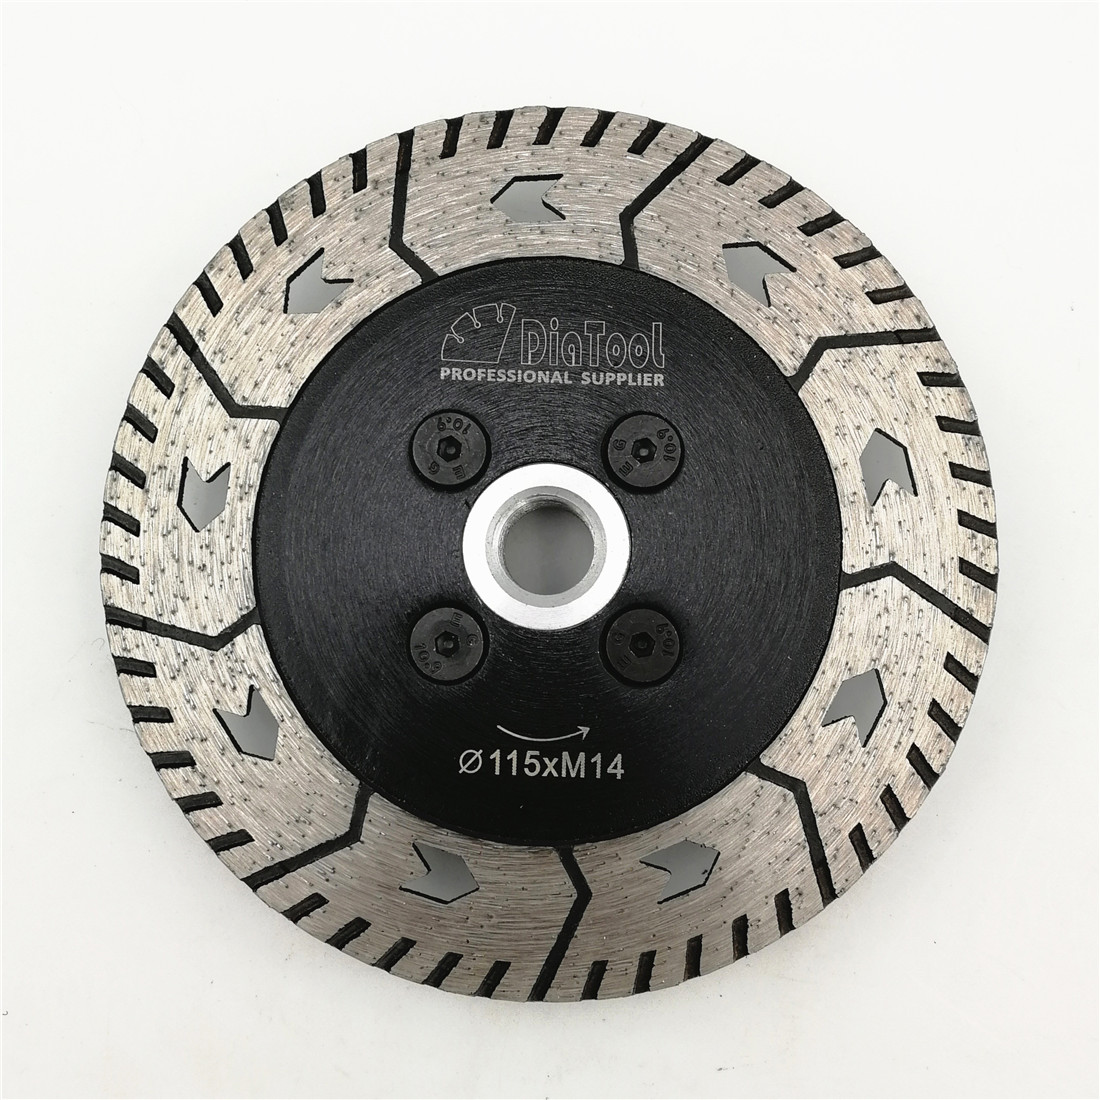 DIATOOL 1pc 115mm or125mm Diamond Cutting Grindng Disc Diameter 4.5 5 Dual Saw Blade Cut Grind Sharpen Granite Marble Concrete